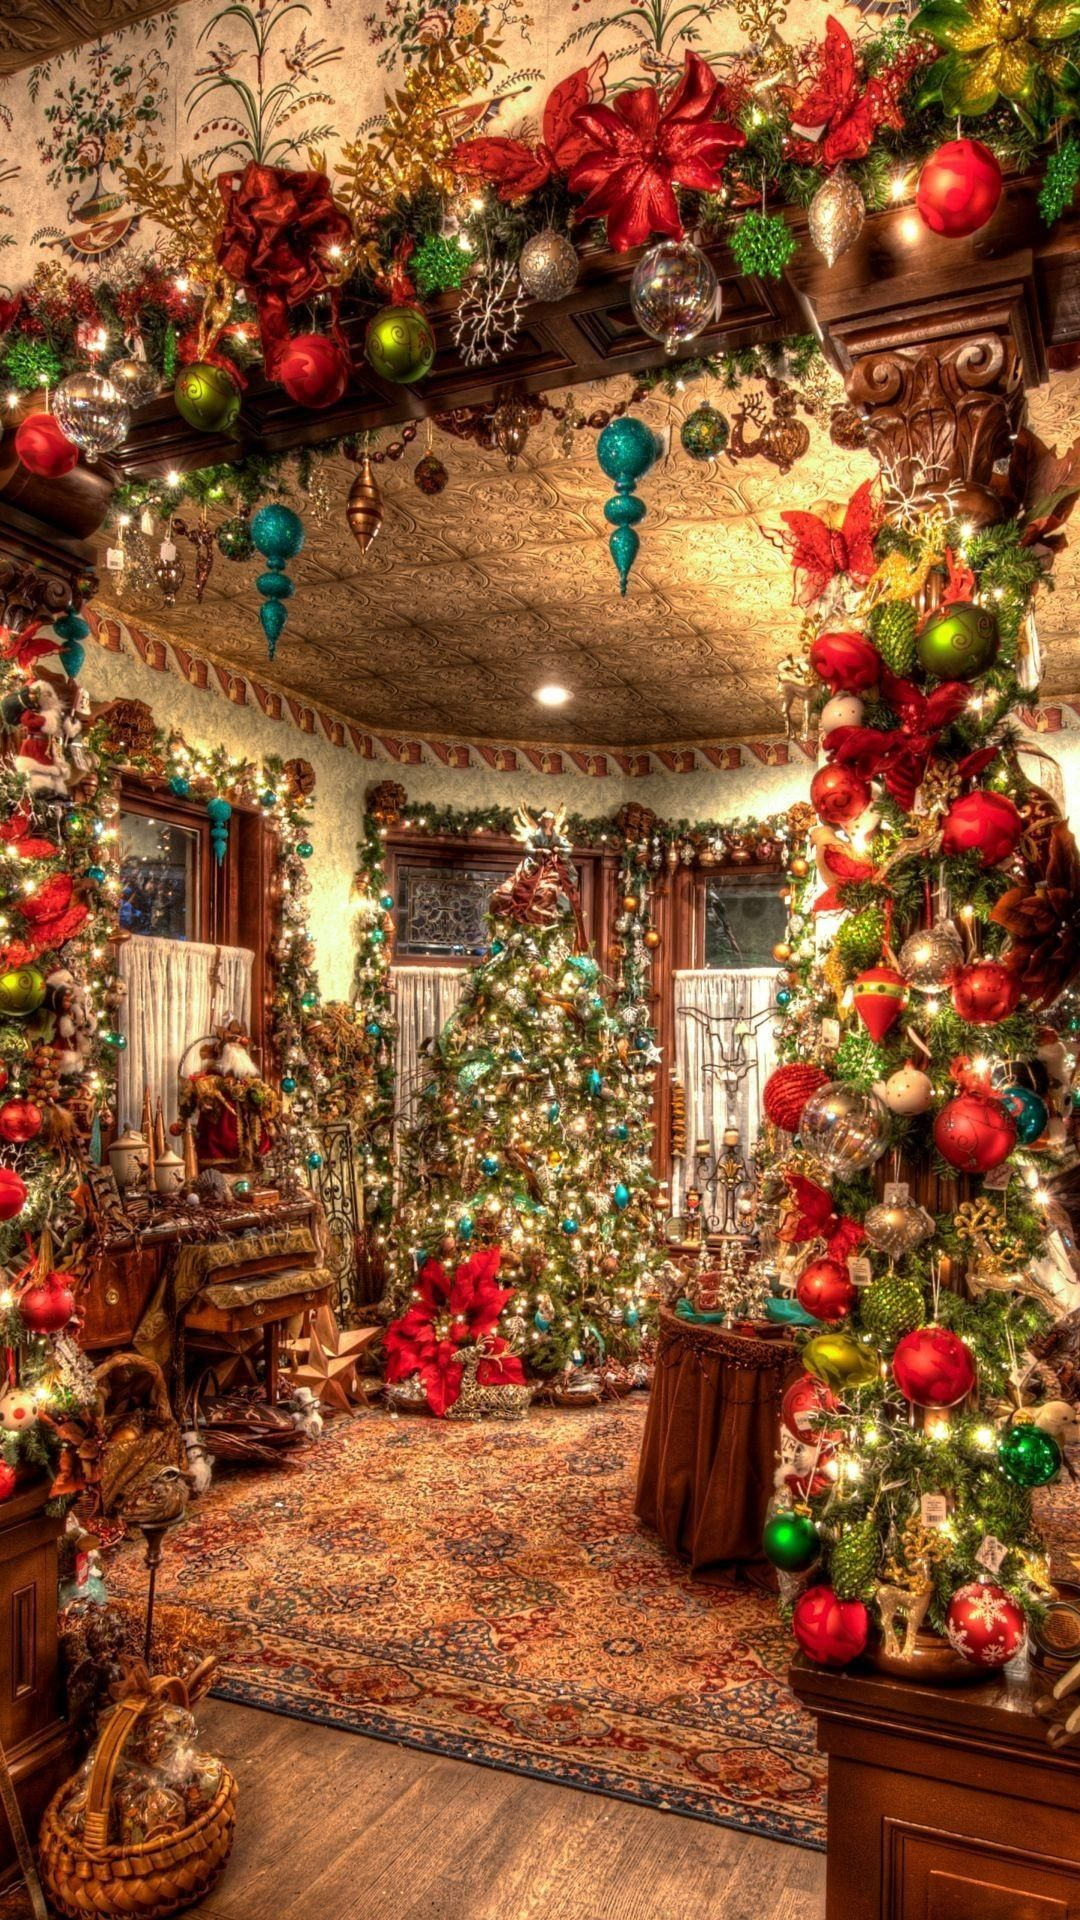 Country Christmas Background Wallpaper.Country Christmas Iphone Wallpapers Top Free Country